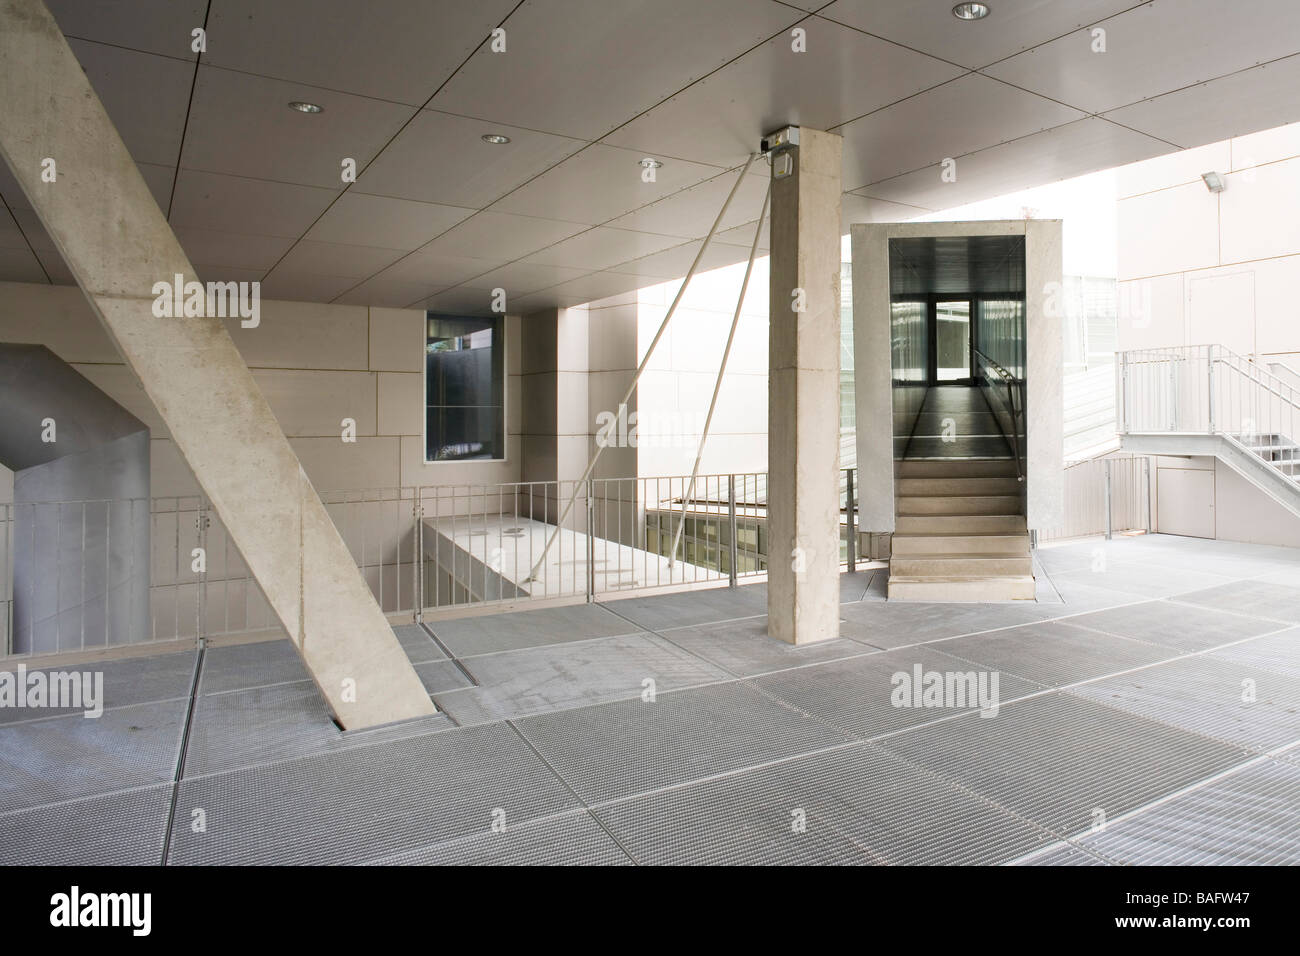 Academia of Fine Arts, Munich, Germany, Coop Himmelb(l)au, Academia of fine arts terrace with cantileaver over head. - Stock Image